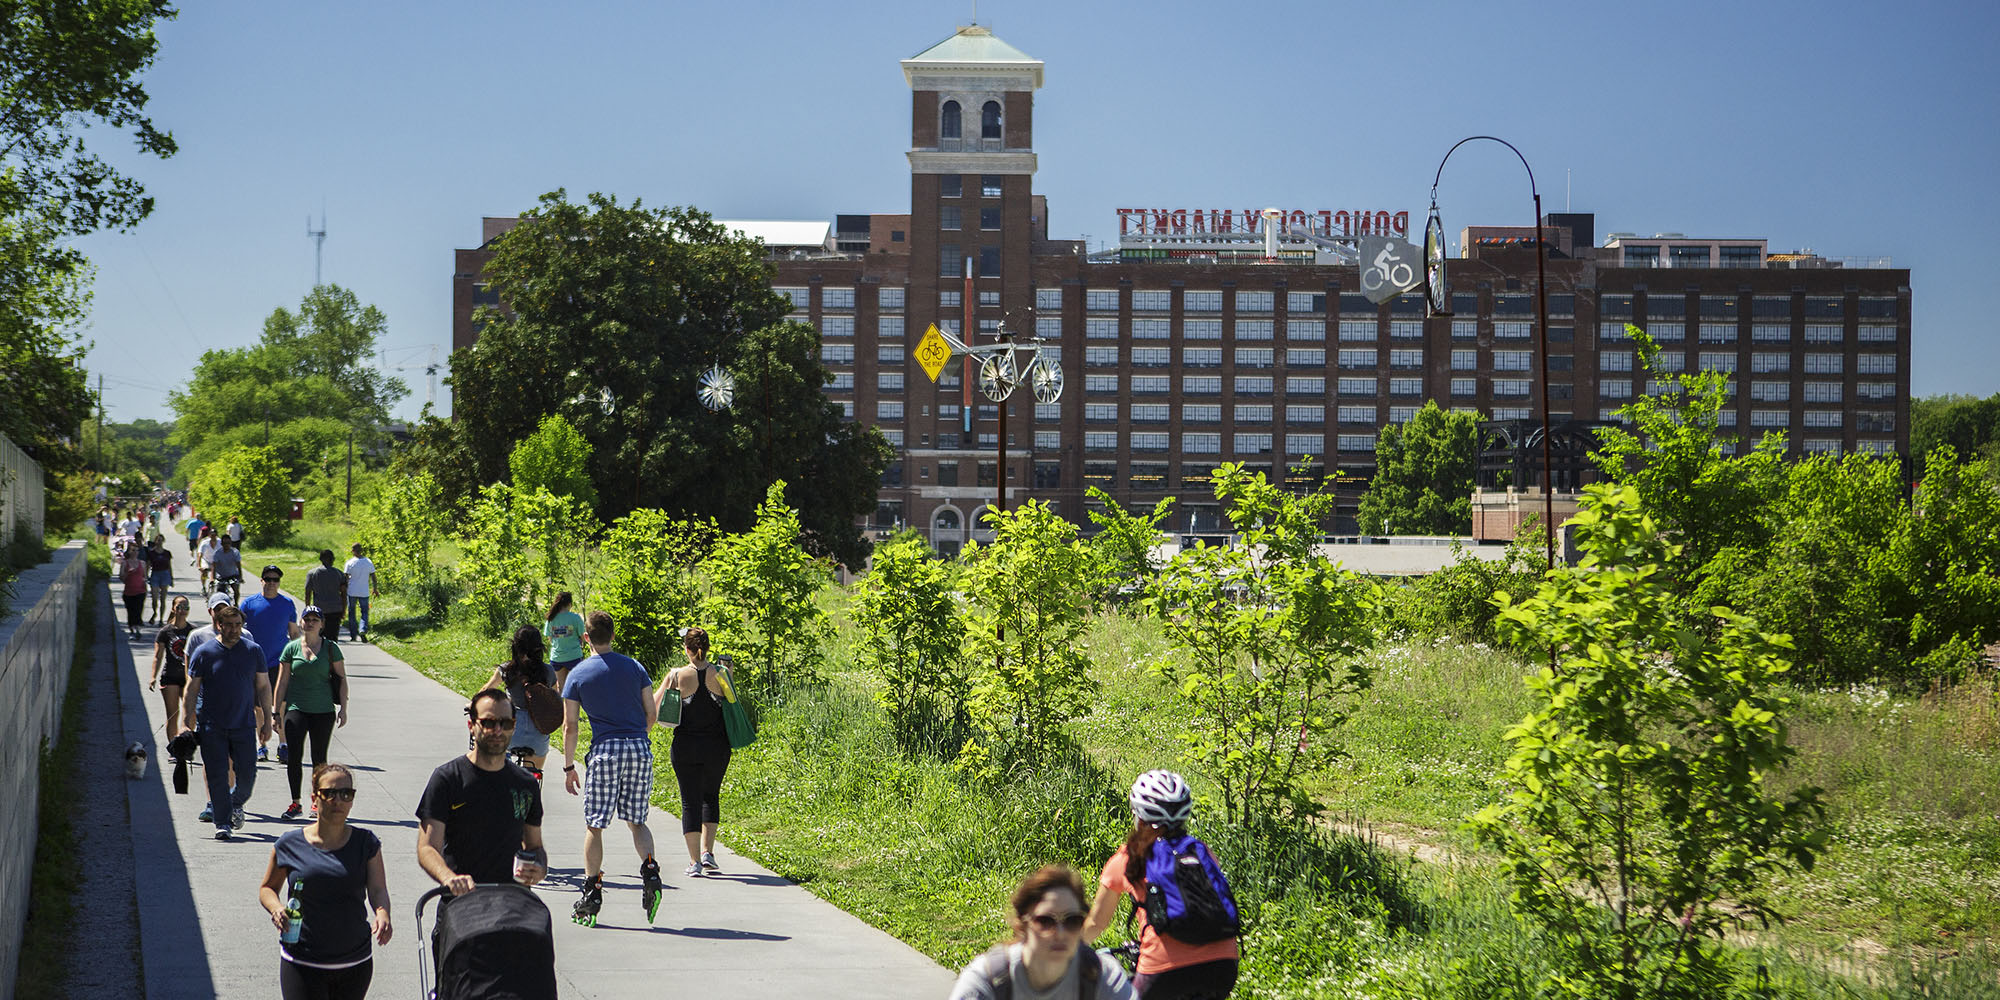 The anticipated completion date for the Atlanta Beltline is 2030. Photo credit www.highline.org